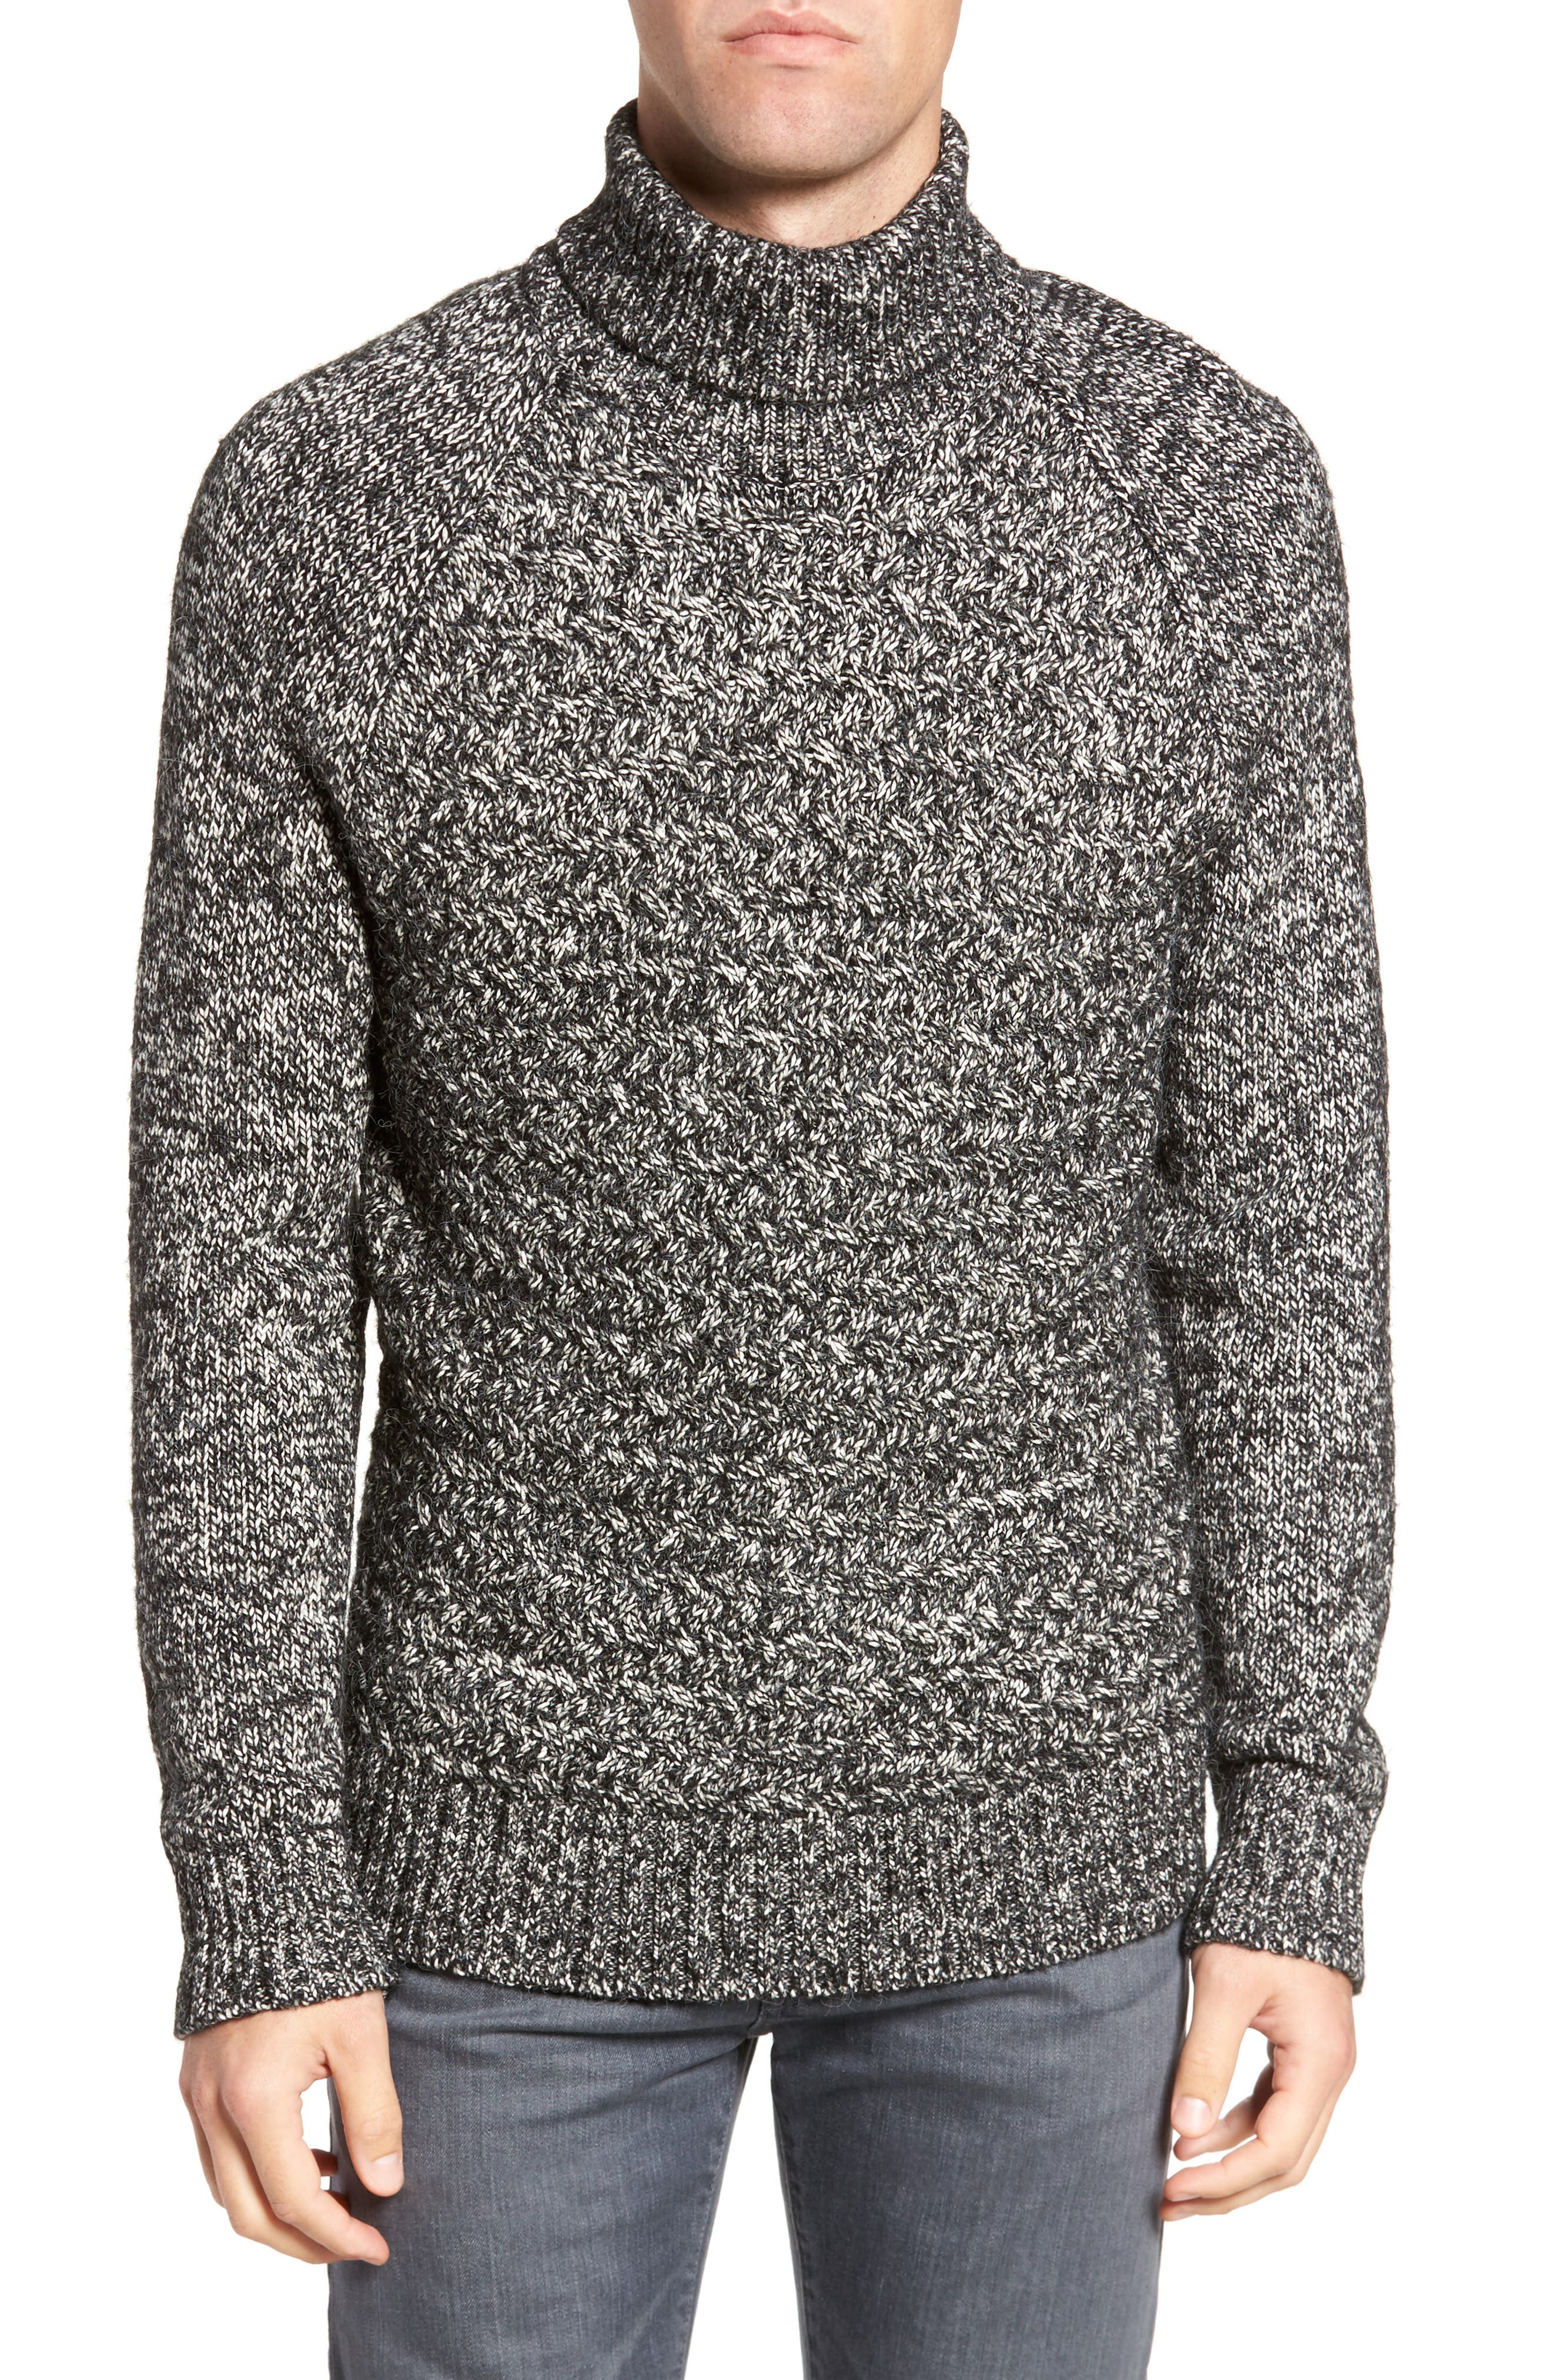 Marled Cable Knit Turtleneck Sweater,                             Main thumbnail 1, color,                             001